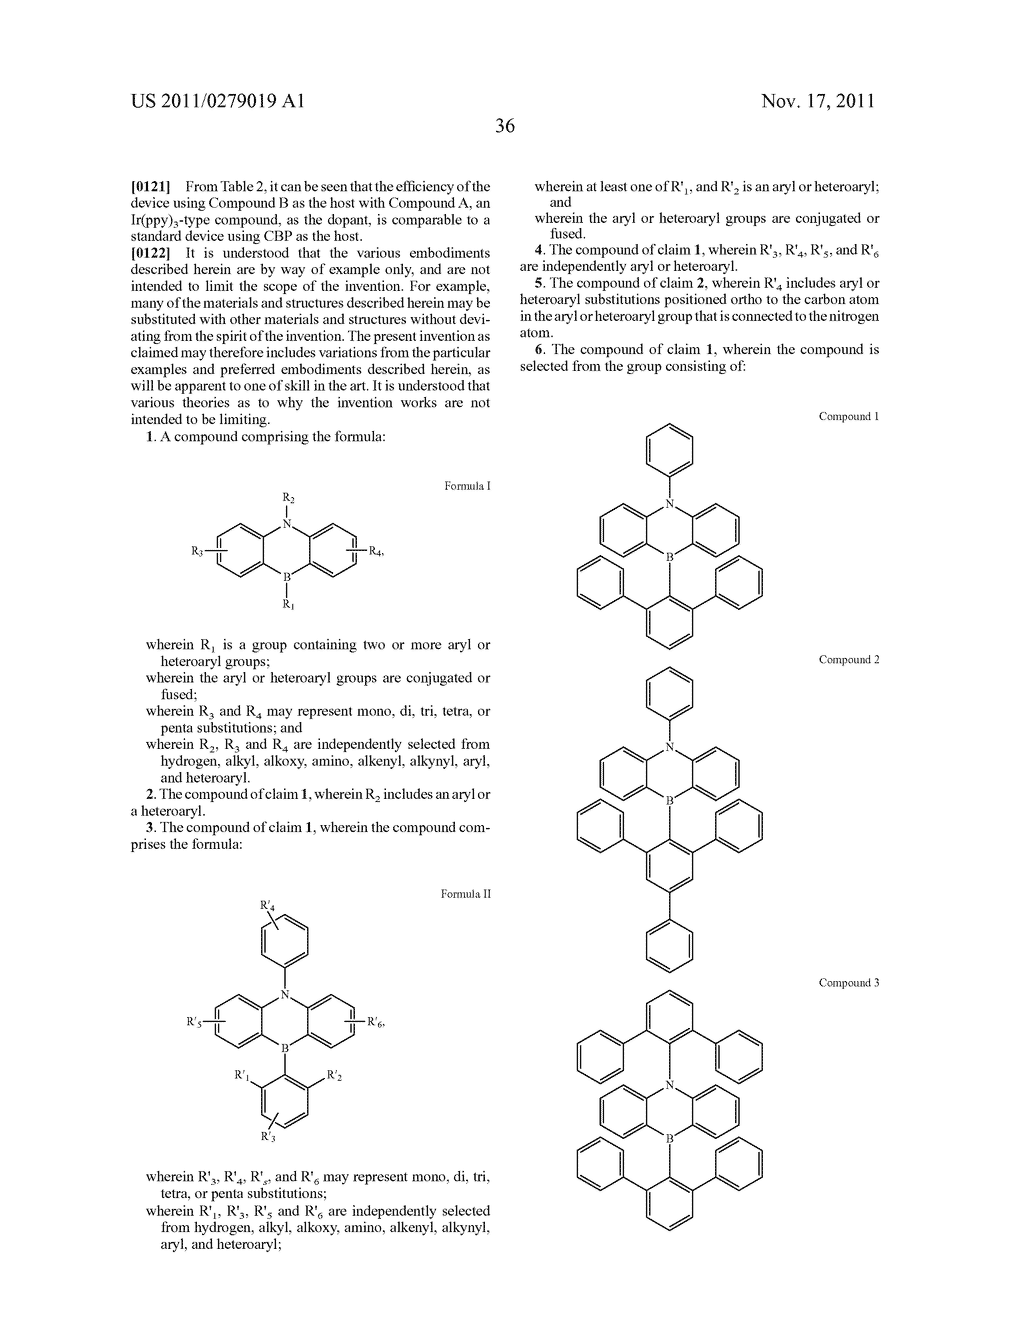 AZABORININE COMPOUNDS AS HOST MATERIALS AND DOPANTS FOR PHOLEDS - diagram, schematic, and image 43